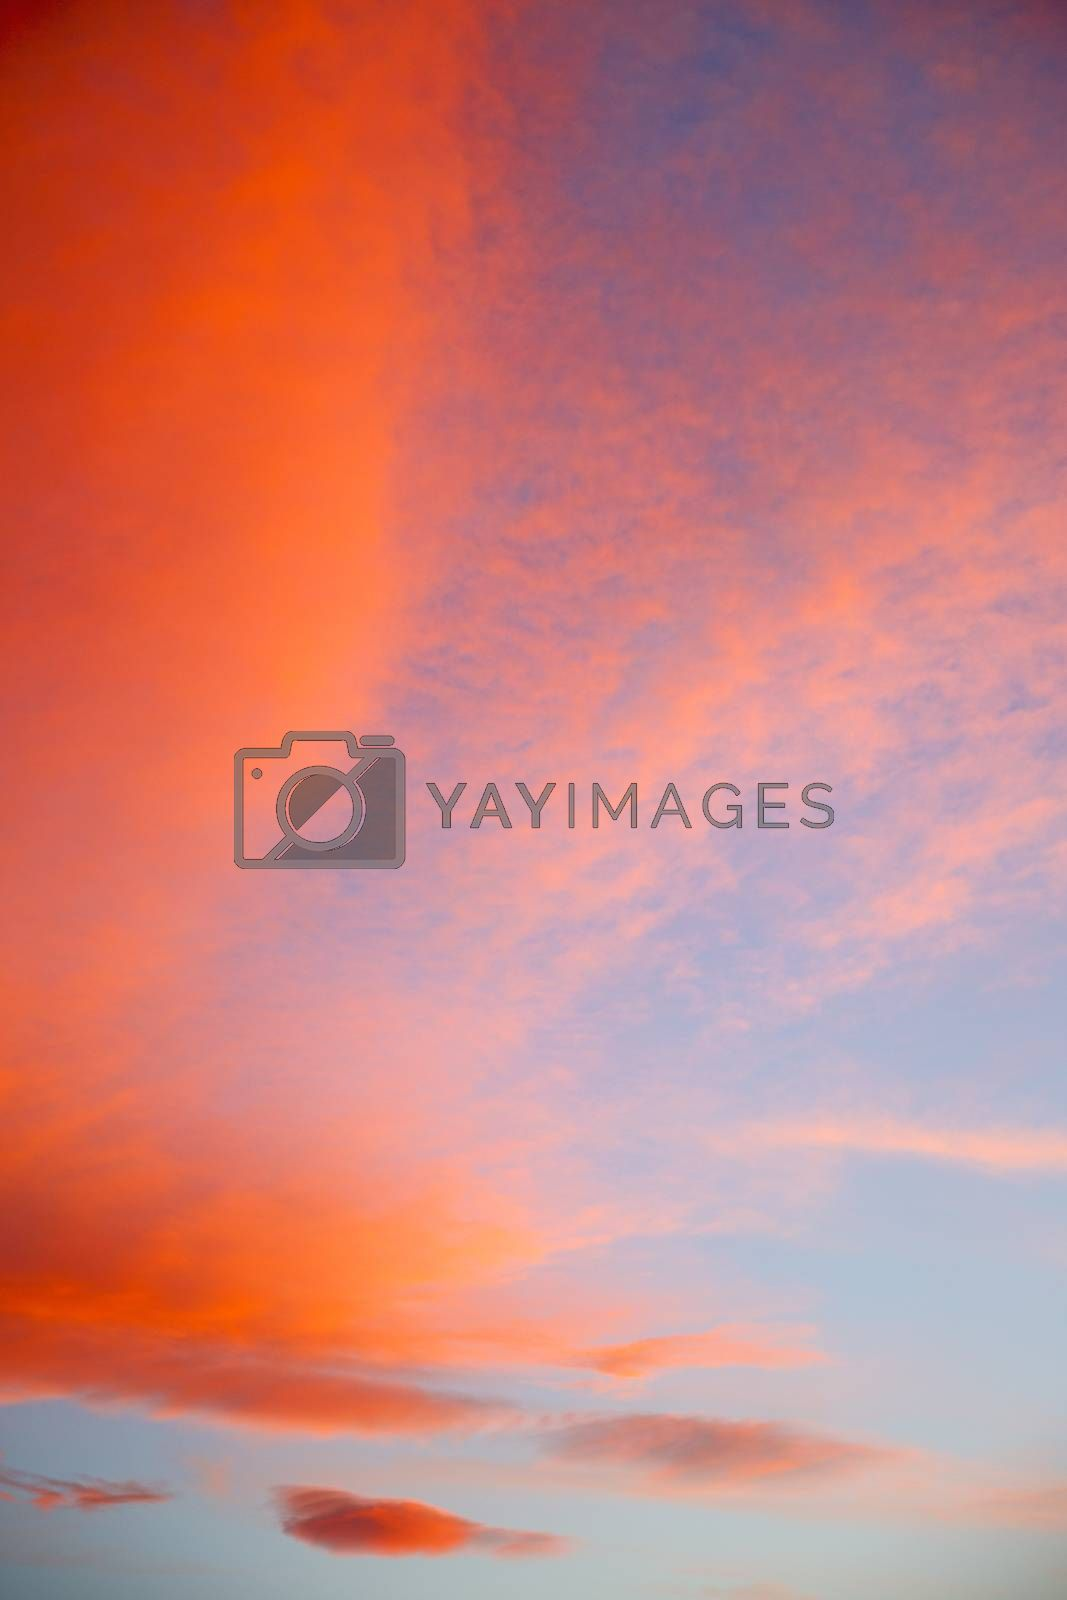 in the colored   clouds and abstract background by lkpro